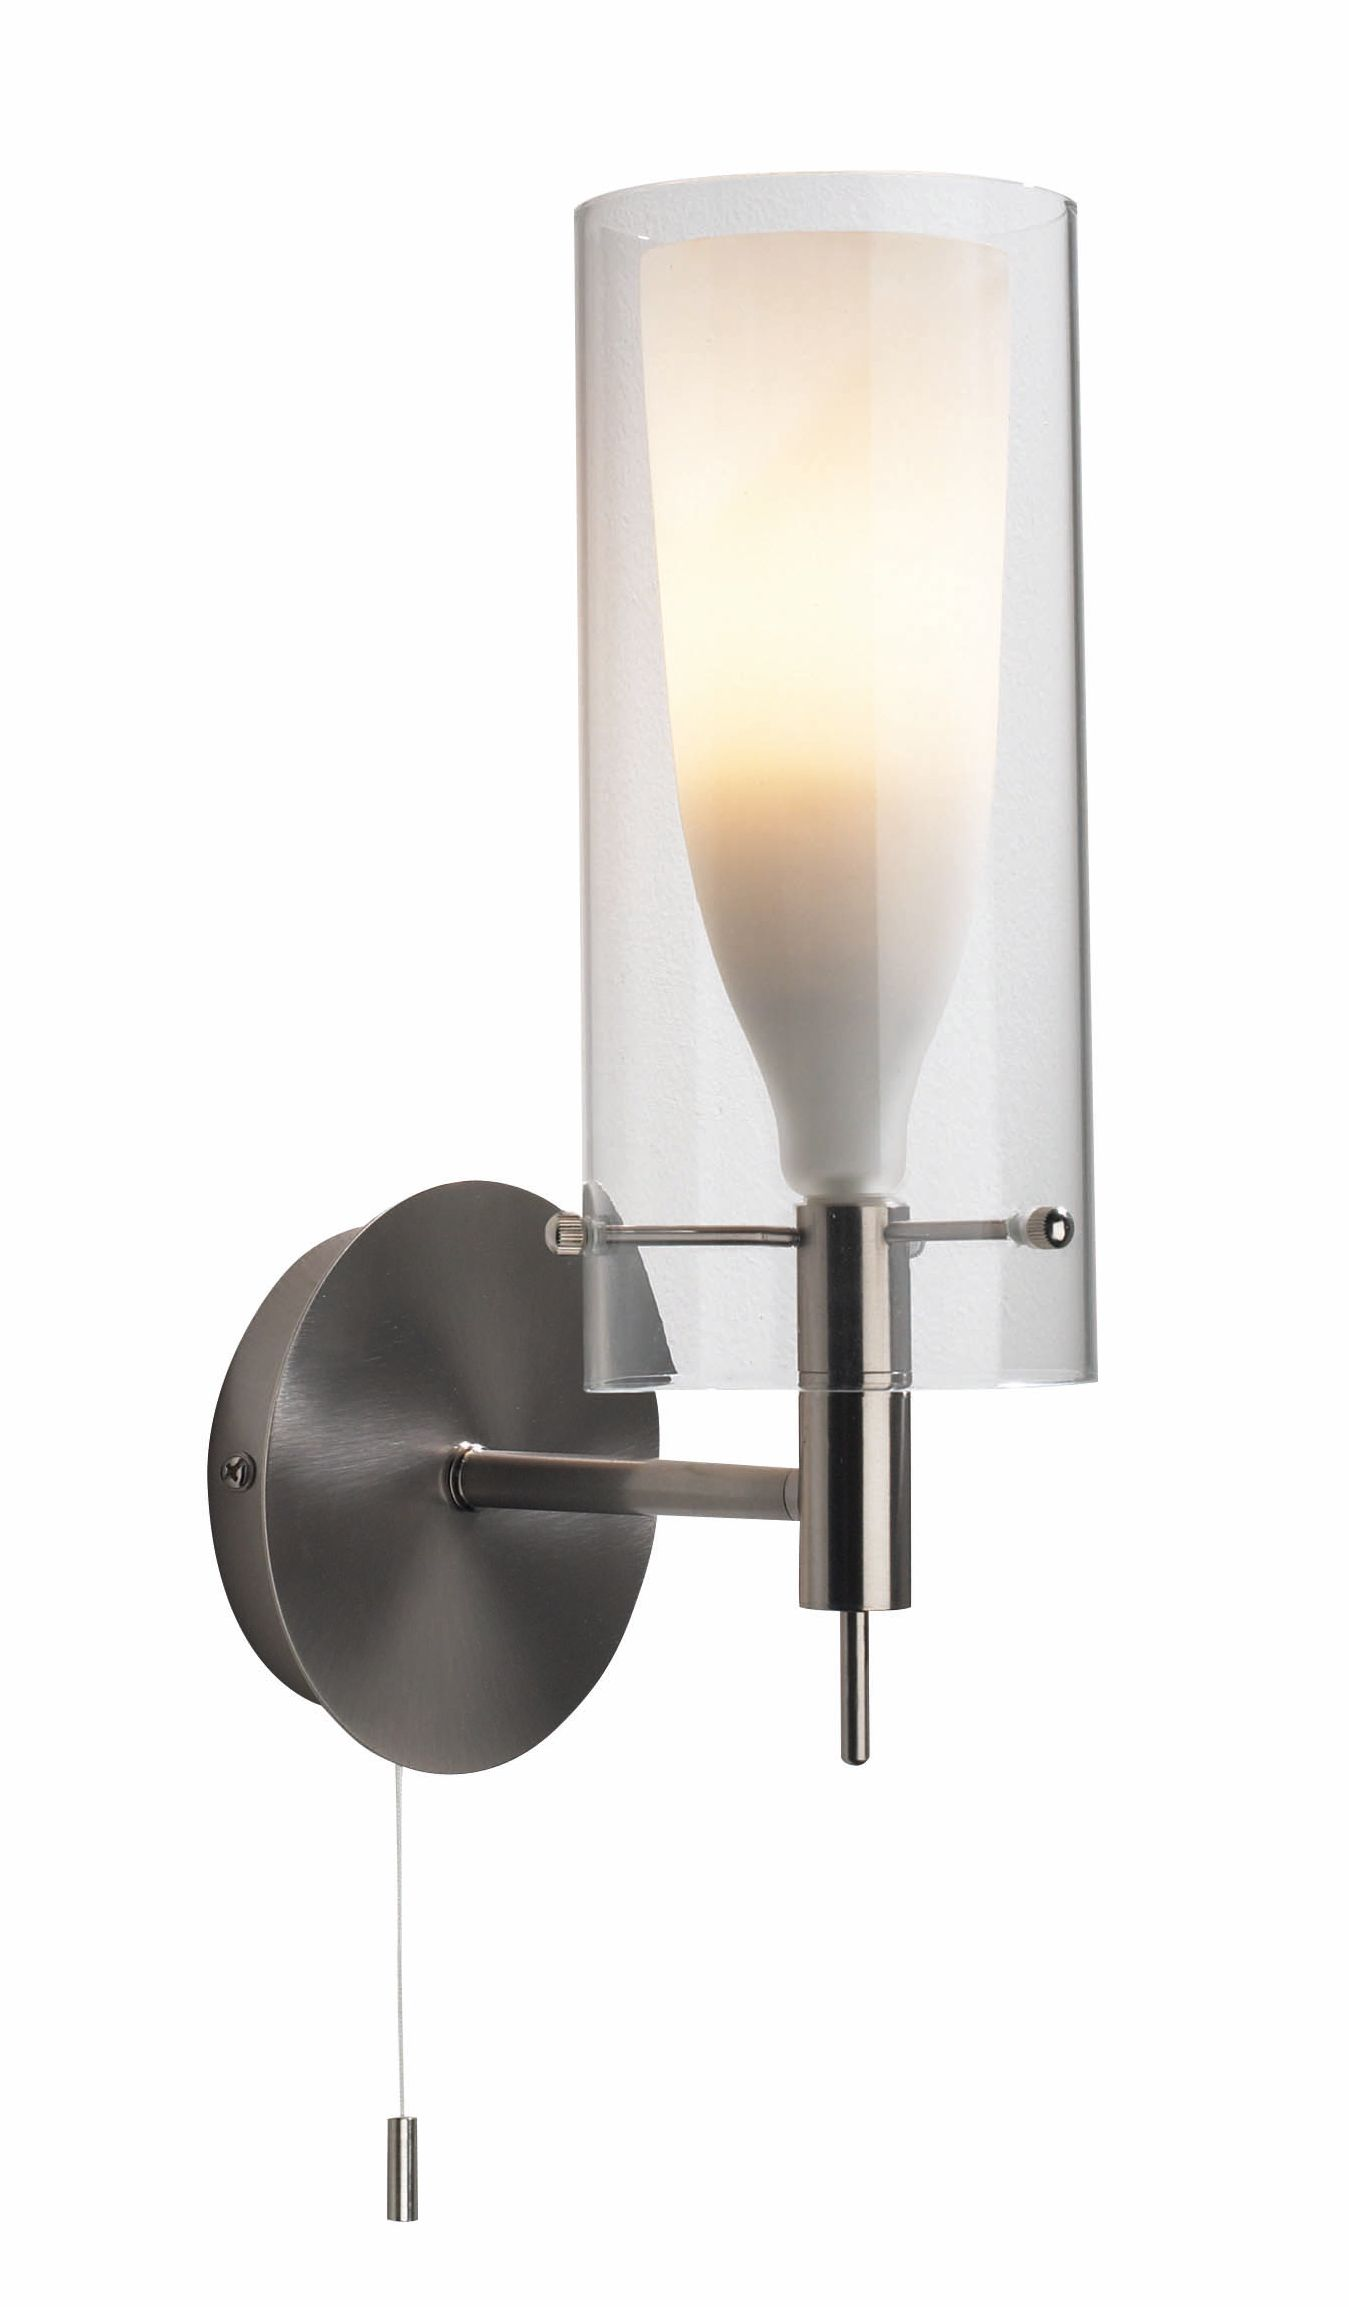 House of Fraser Boda wall light - review, compare prices, buy online